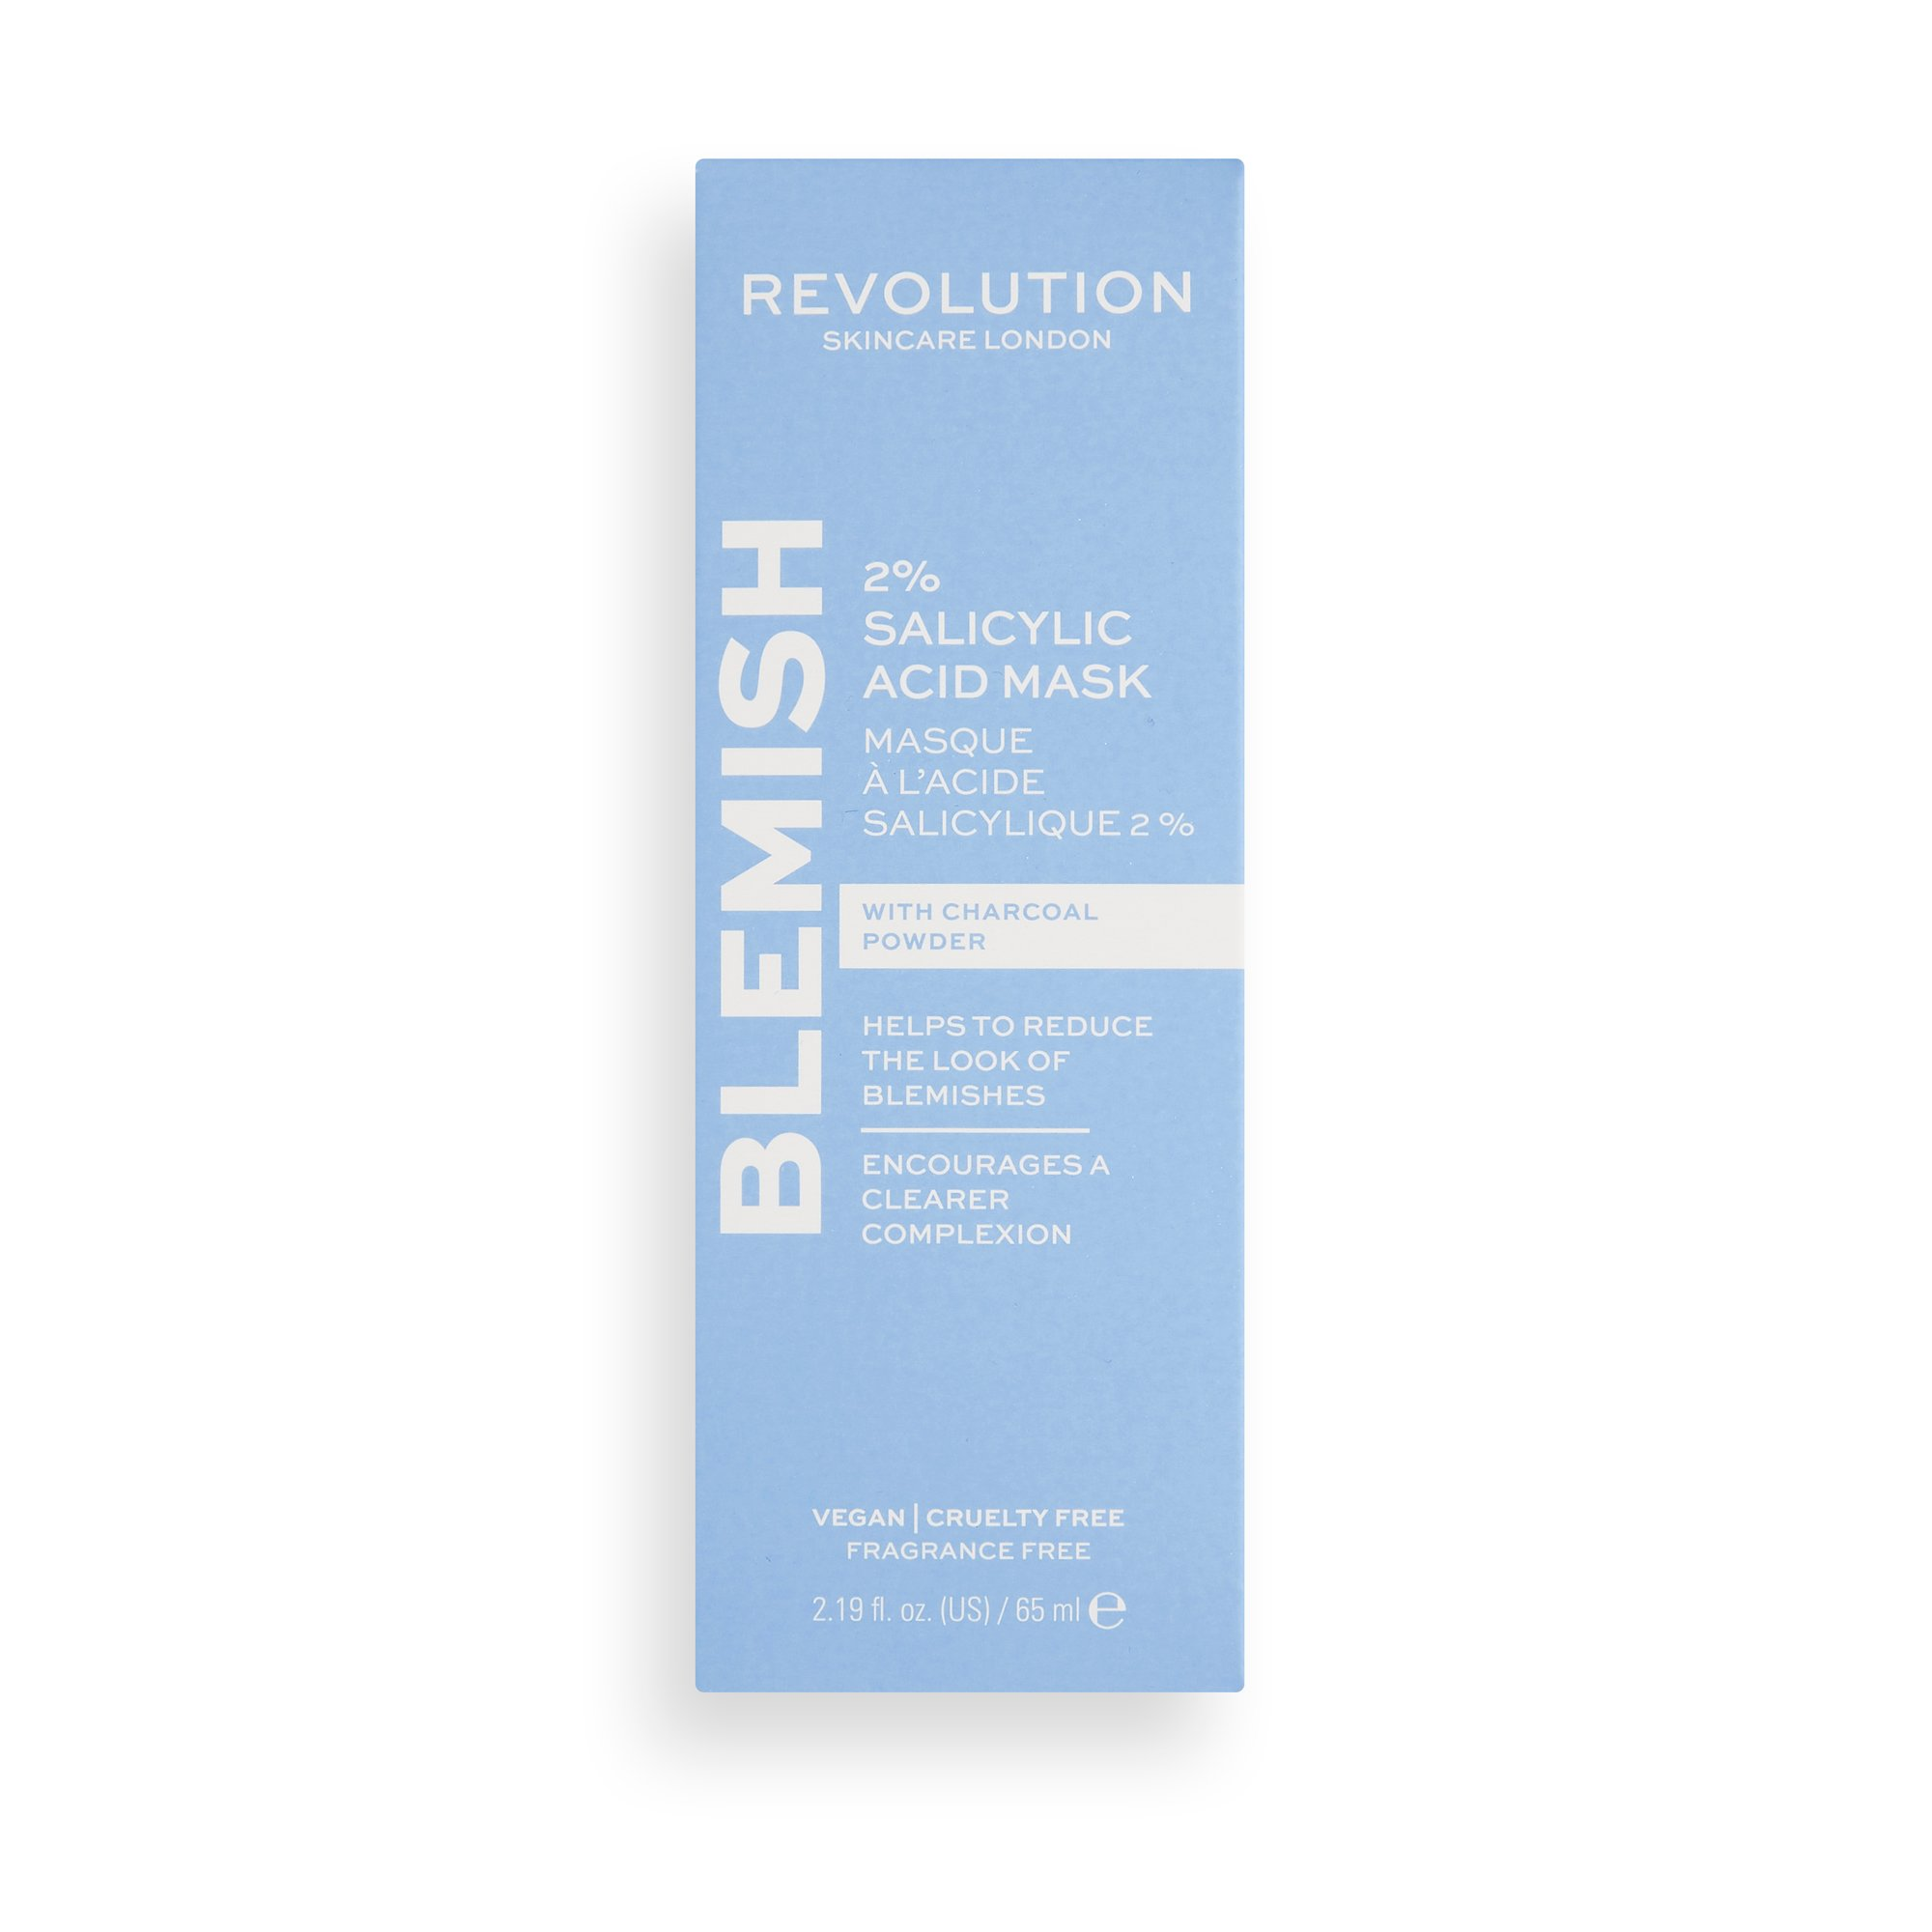 Revolution Skincare 2% Salicylic Acid BHA Anti Blemish Face Mask